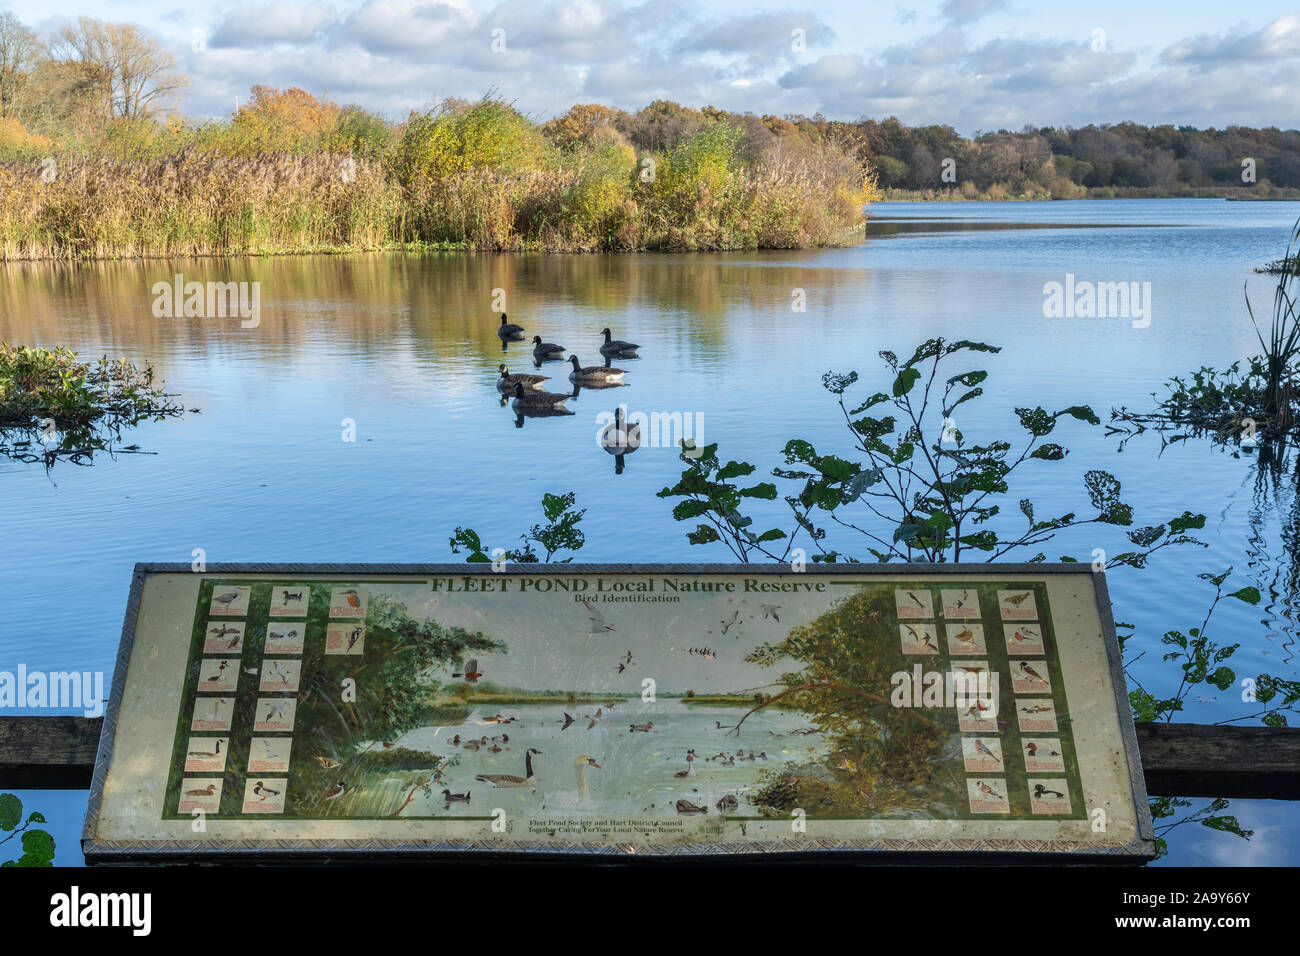 view-of-fleet-pond-in-hampshire-uk-during-autumn-with-an-information-board-and-canada-geese-on-the-water-2A9Y66Y.jpg